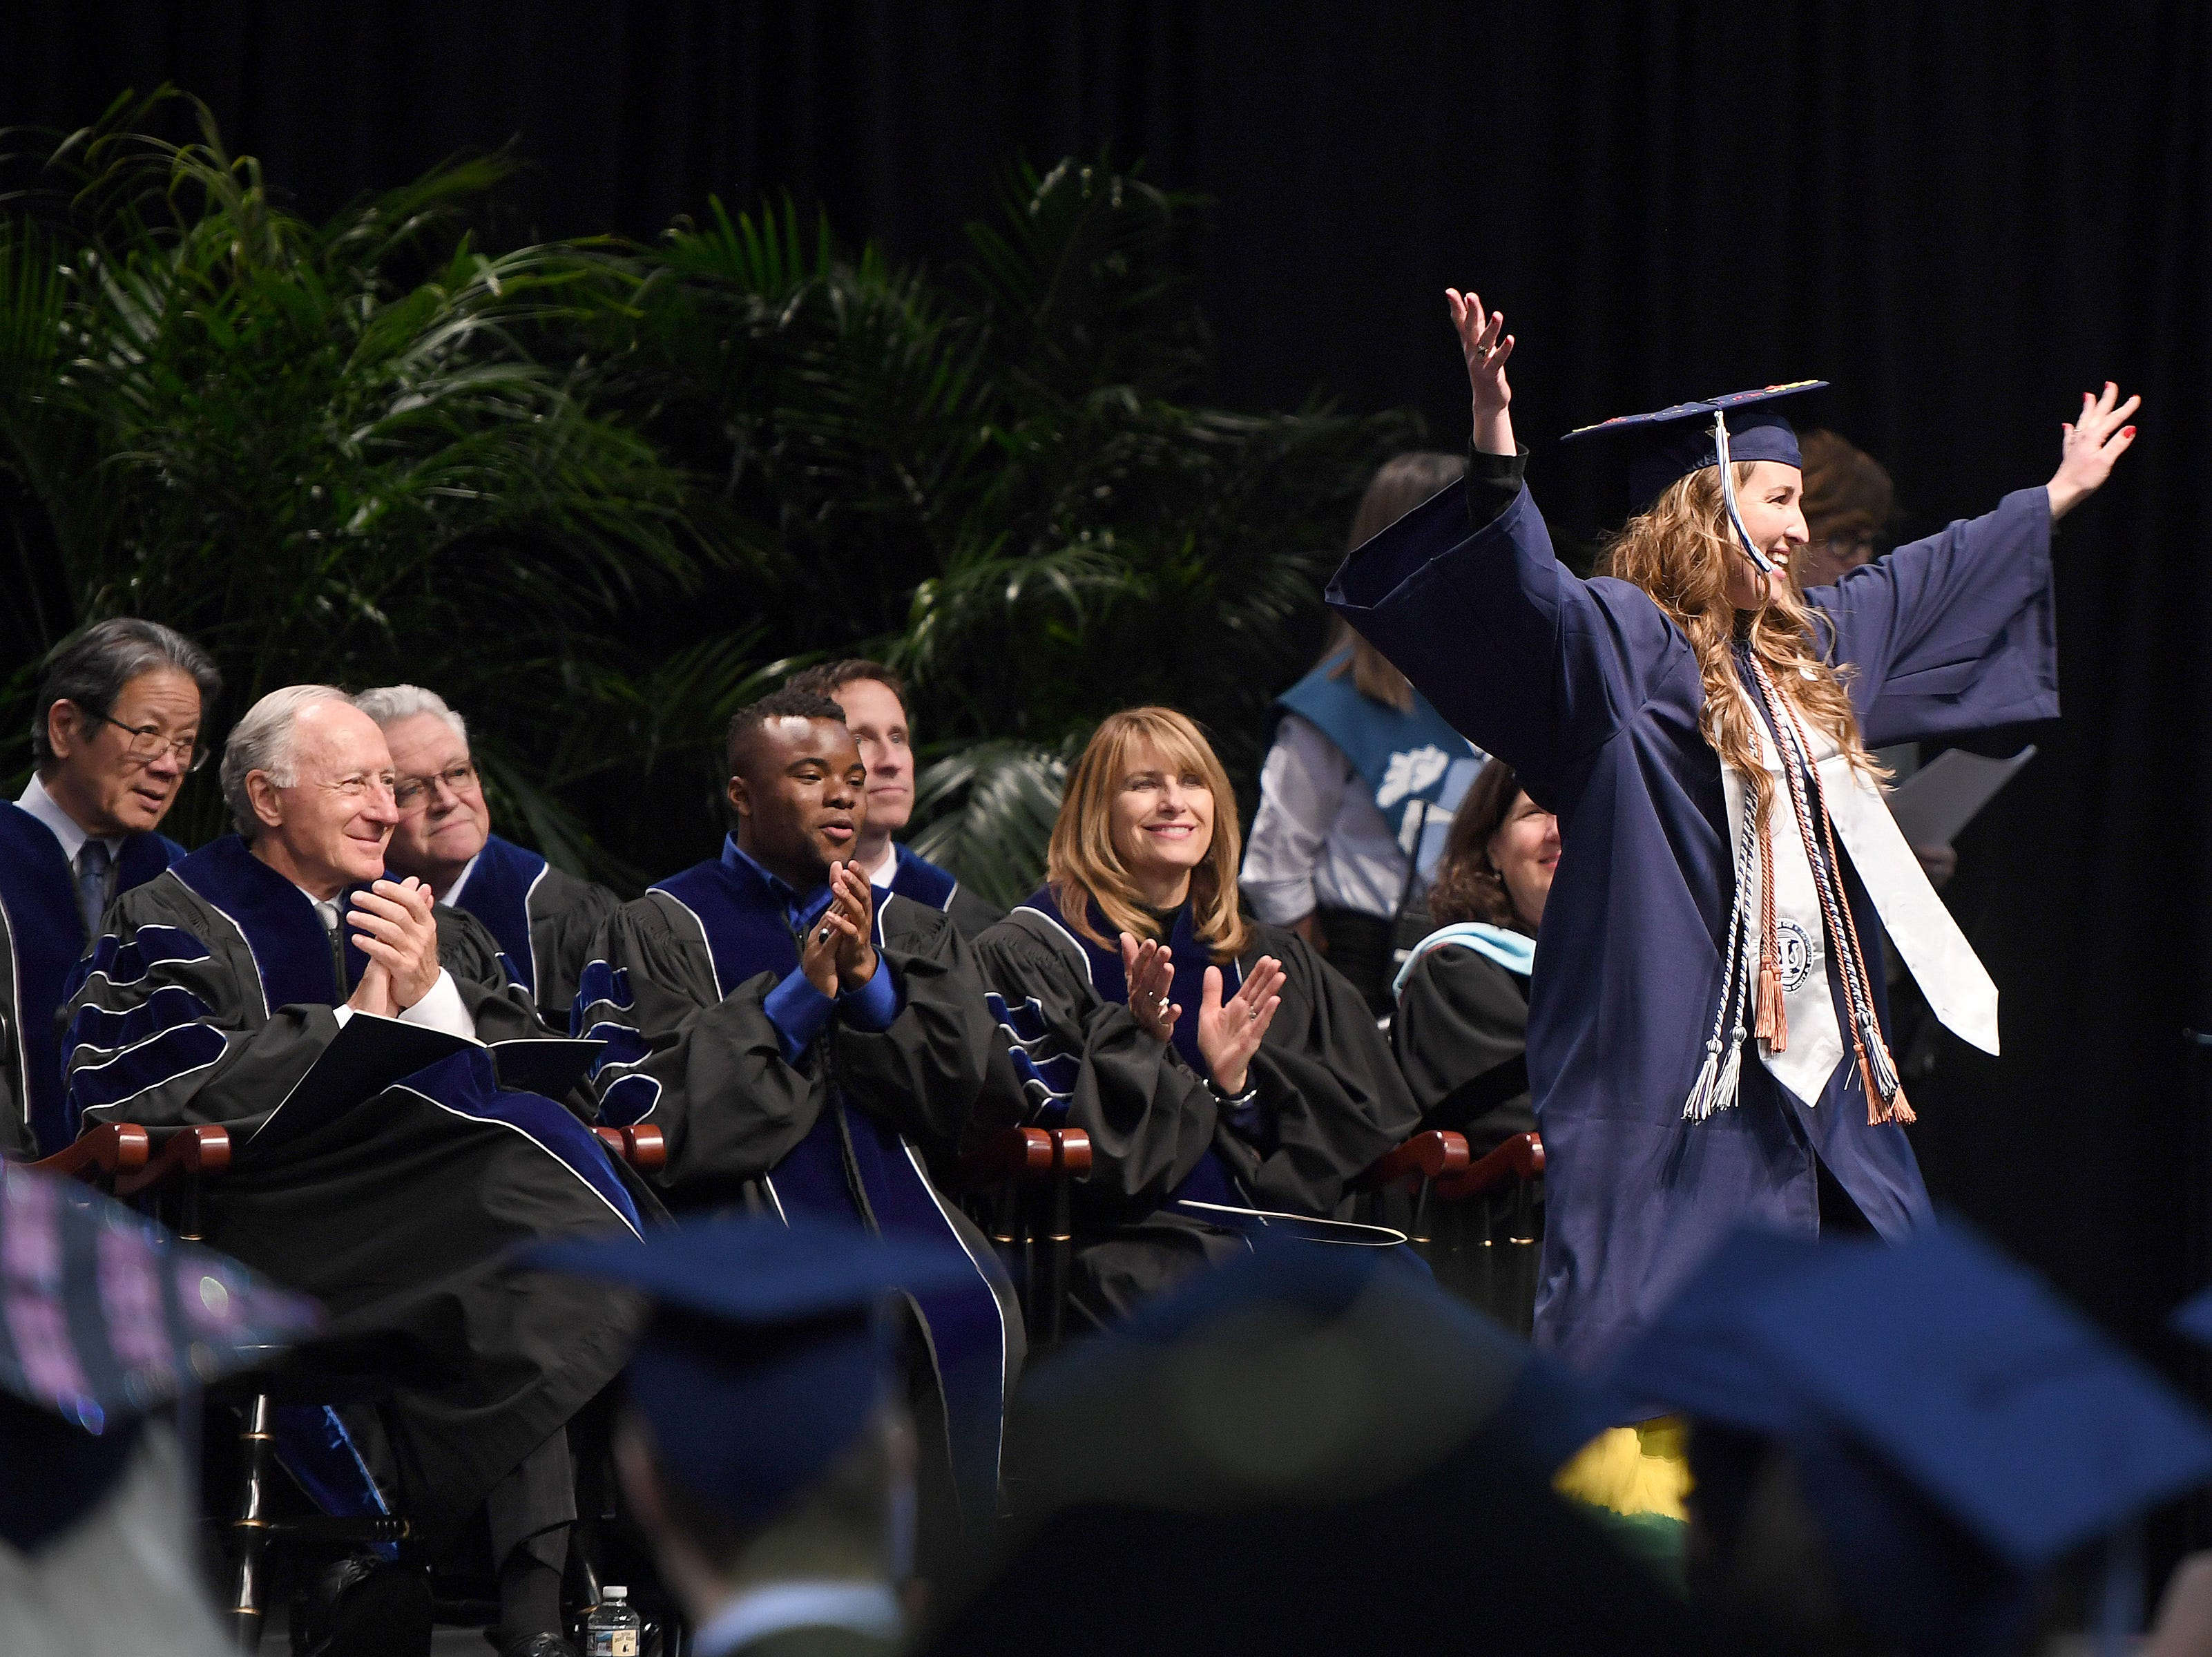 Amber Owens does a twirl on the stage during the UNC Asheville winter commencement ceremony at Kimmel Arena on Dec. 14, 2018.